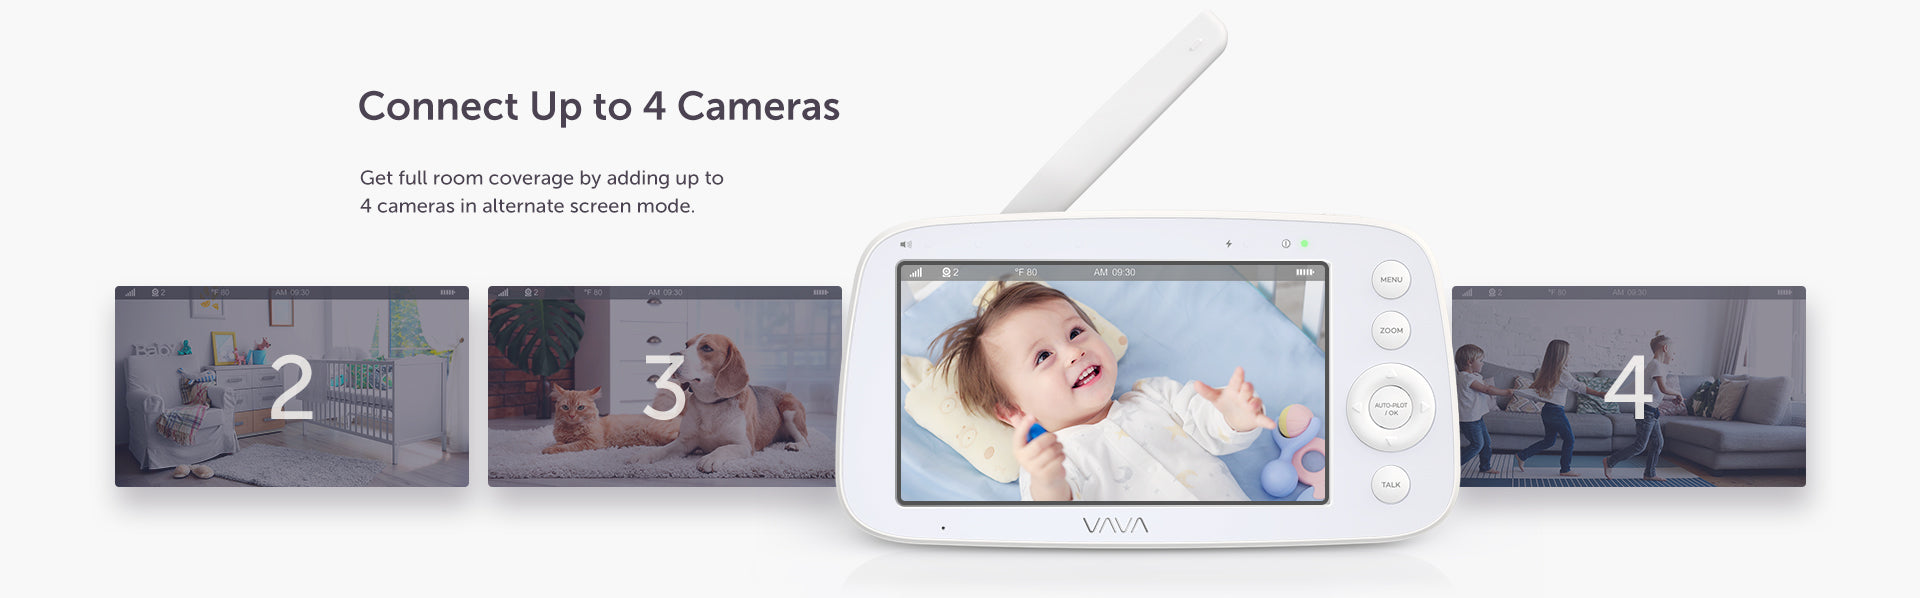 Connect Up to 4 Cameras